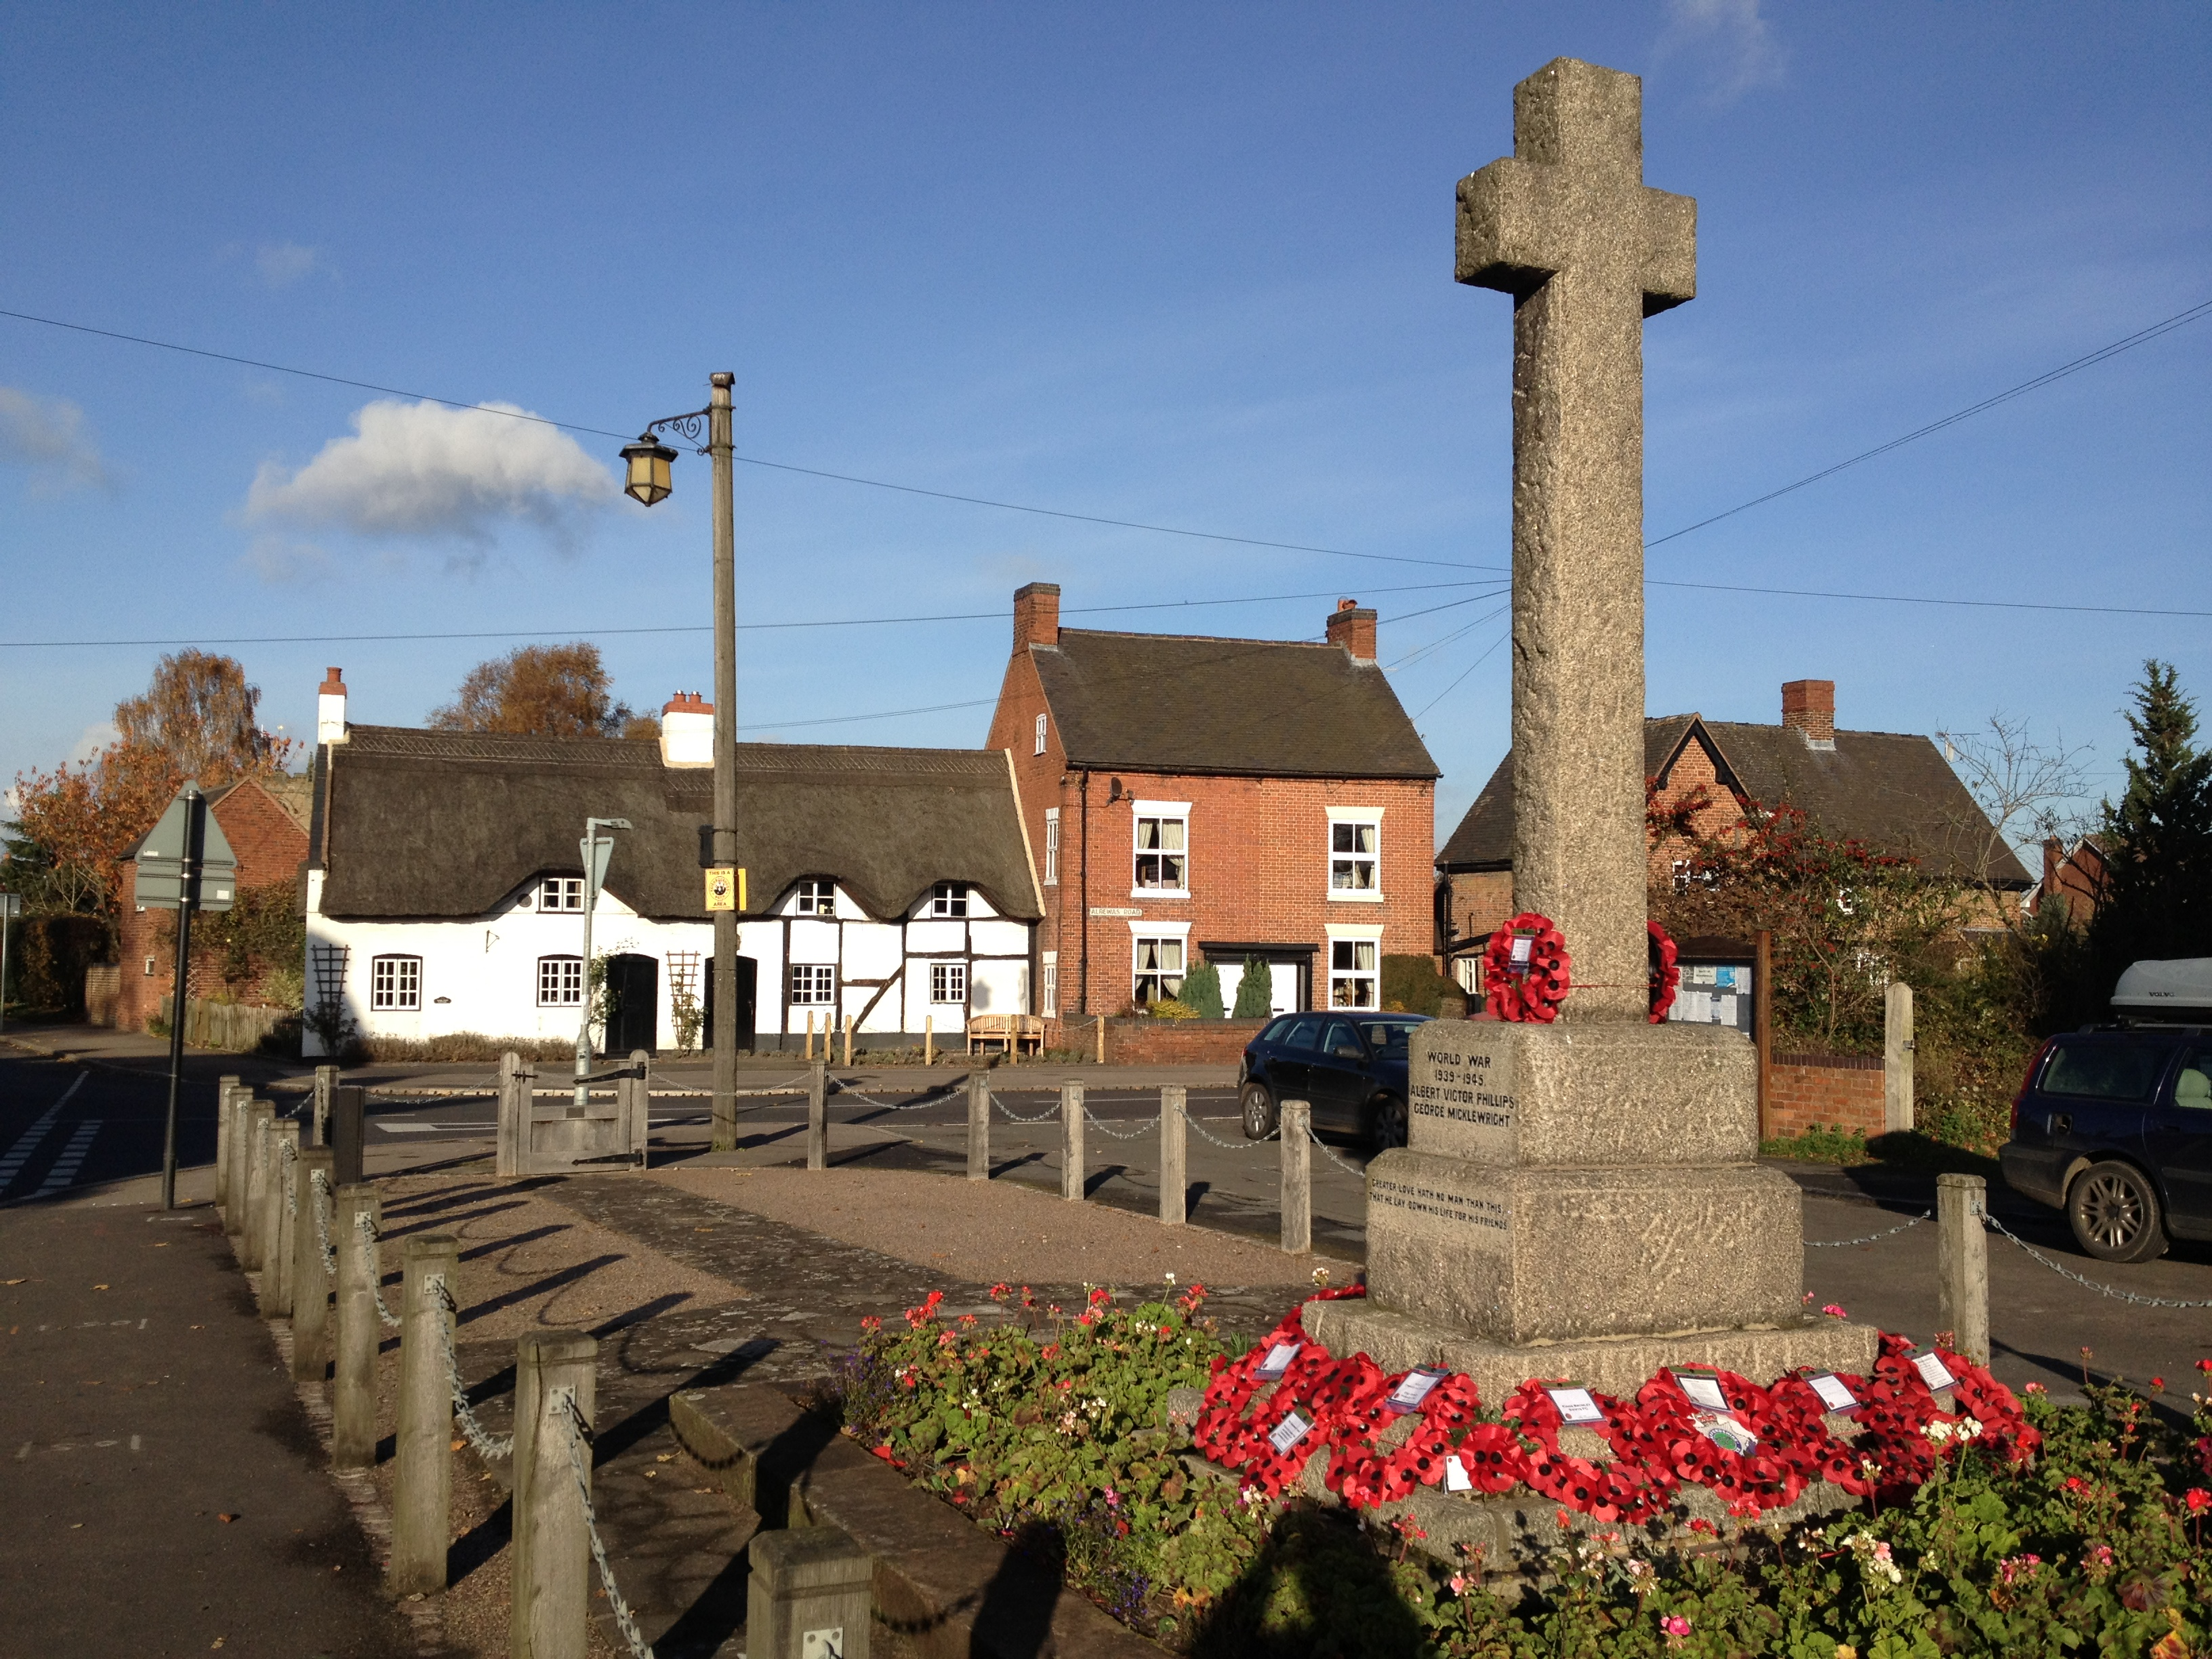 Most English villages have a war memorial